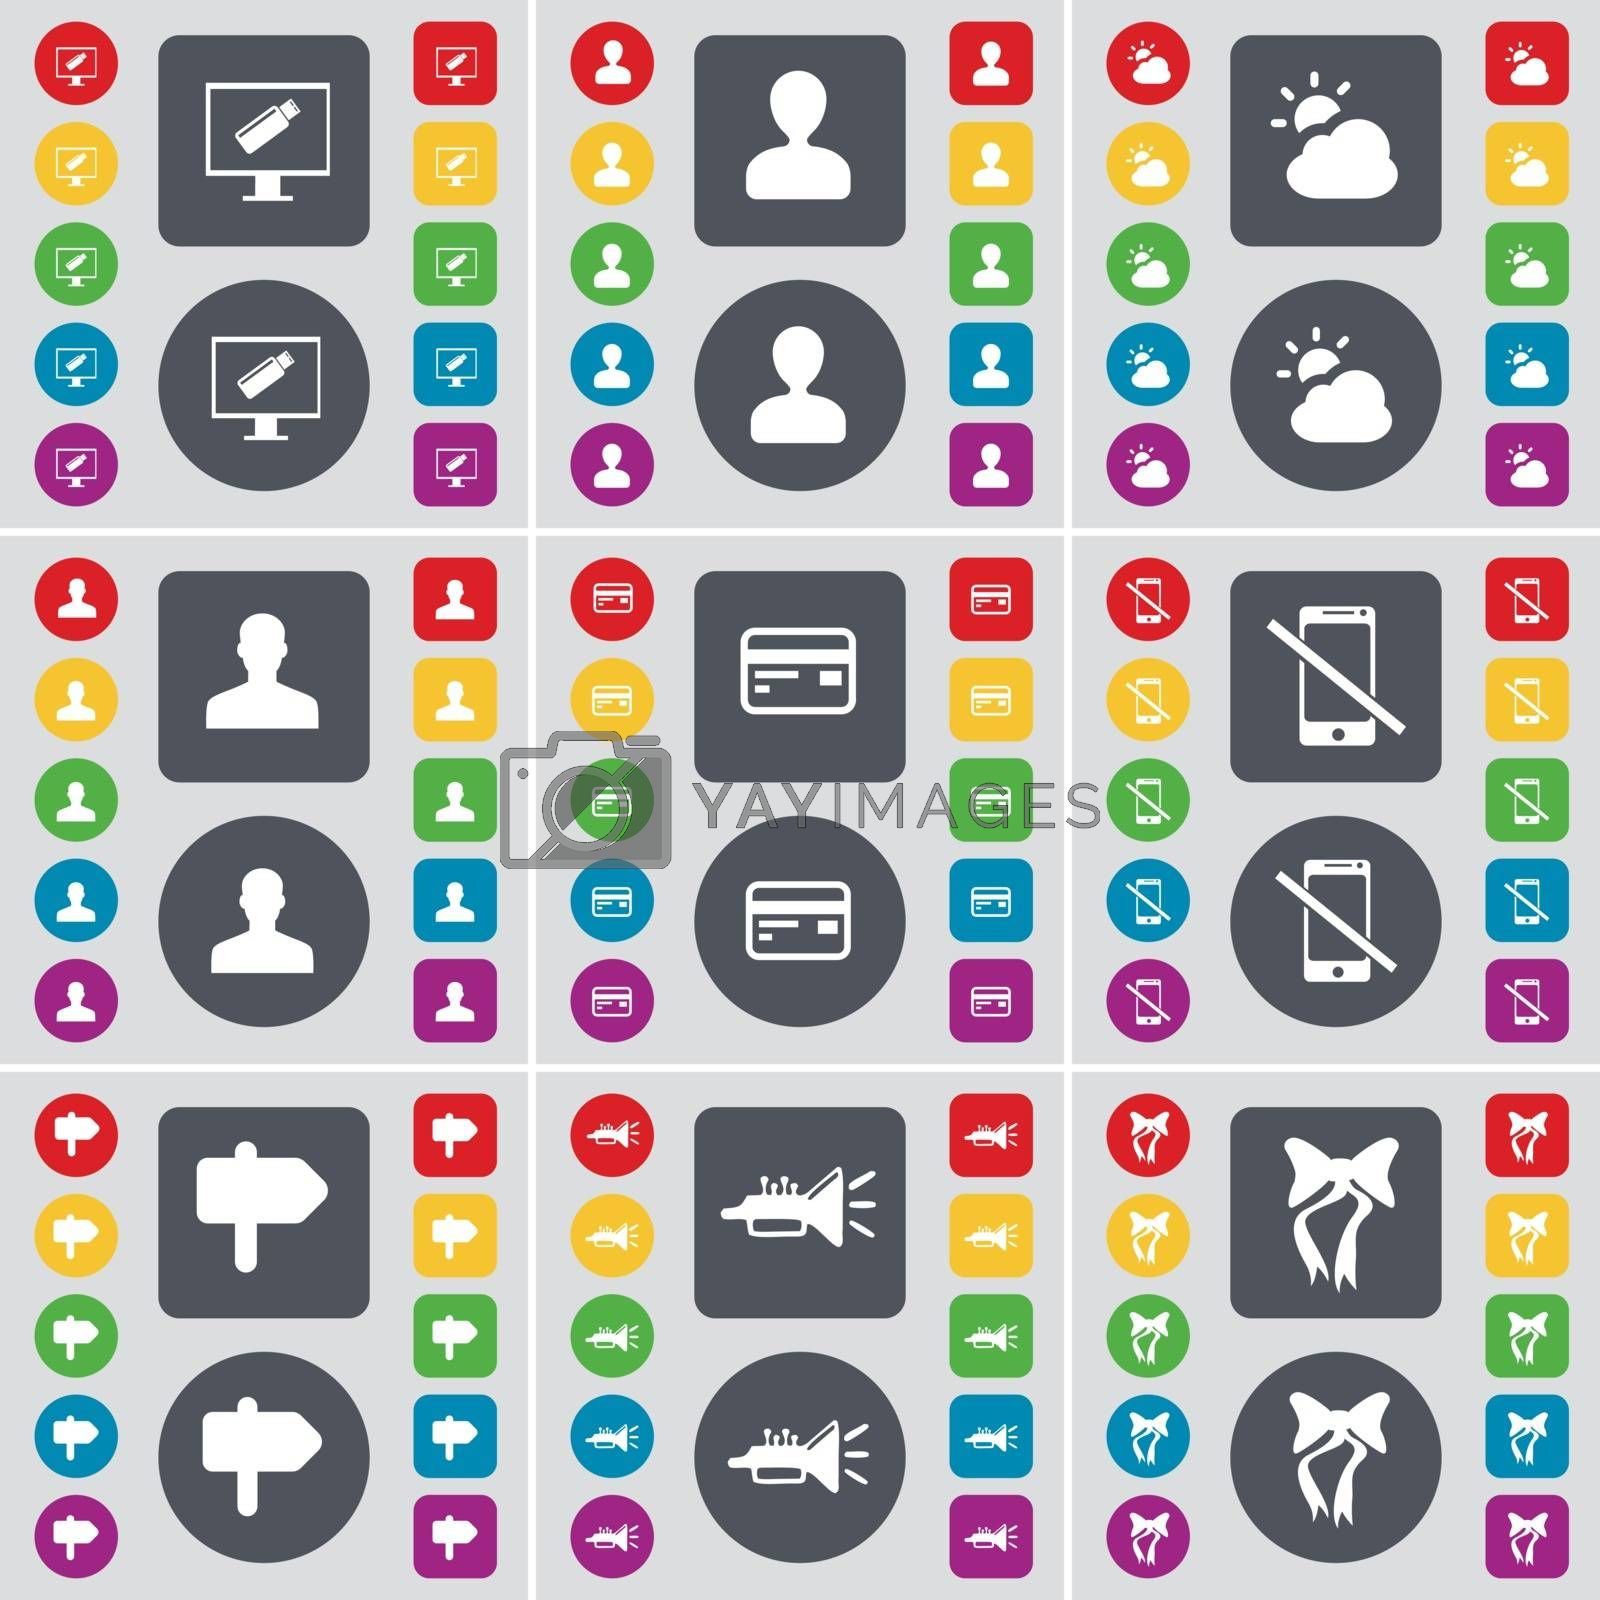 Royalty free image of Monitor, Avatar, Cloud, Silhouette, Credit card, Smartphone, Signpost, Trumped, Bow icon symbol. A large set of flat, colored buttons for your design. Vector by serhii_lohvyniuk